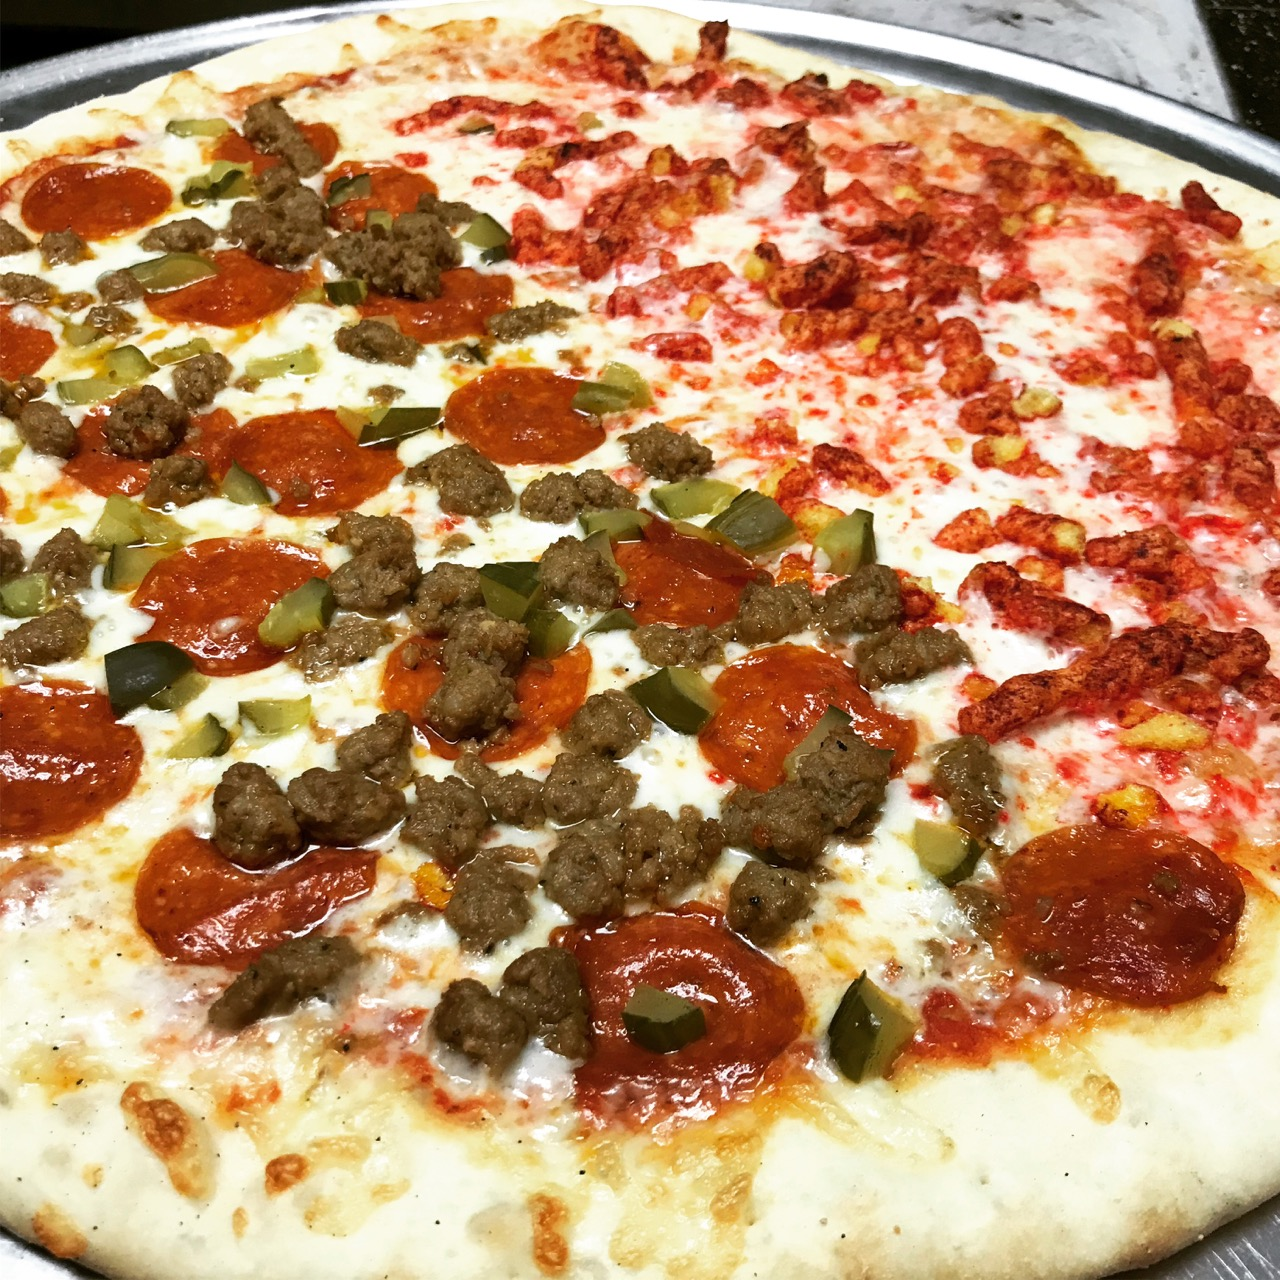 Last Dinner of the Year: Pizza From Eatz Pizza – December 31 2017